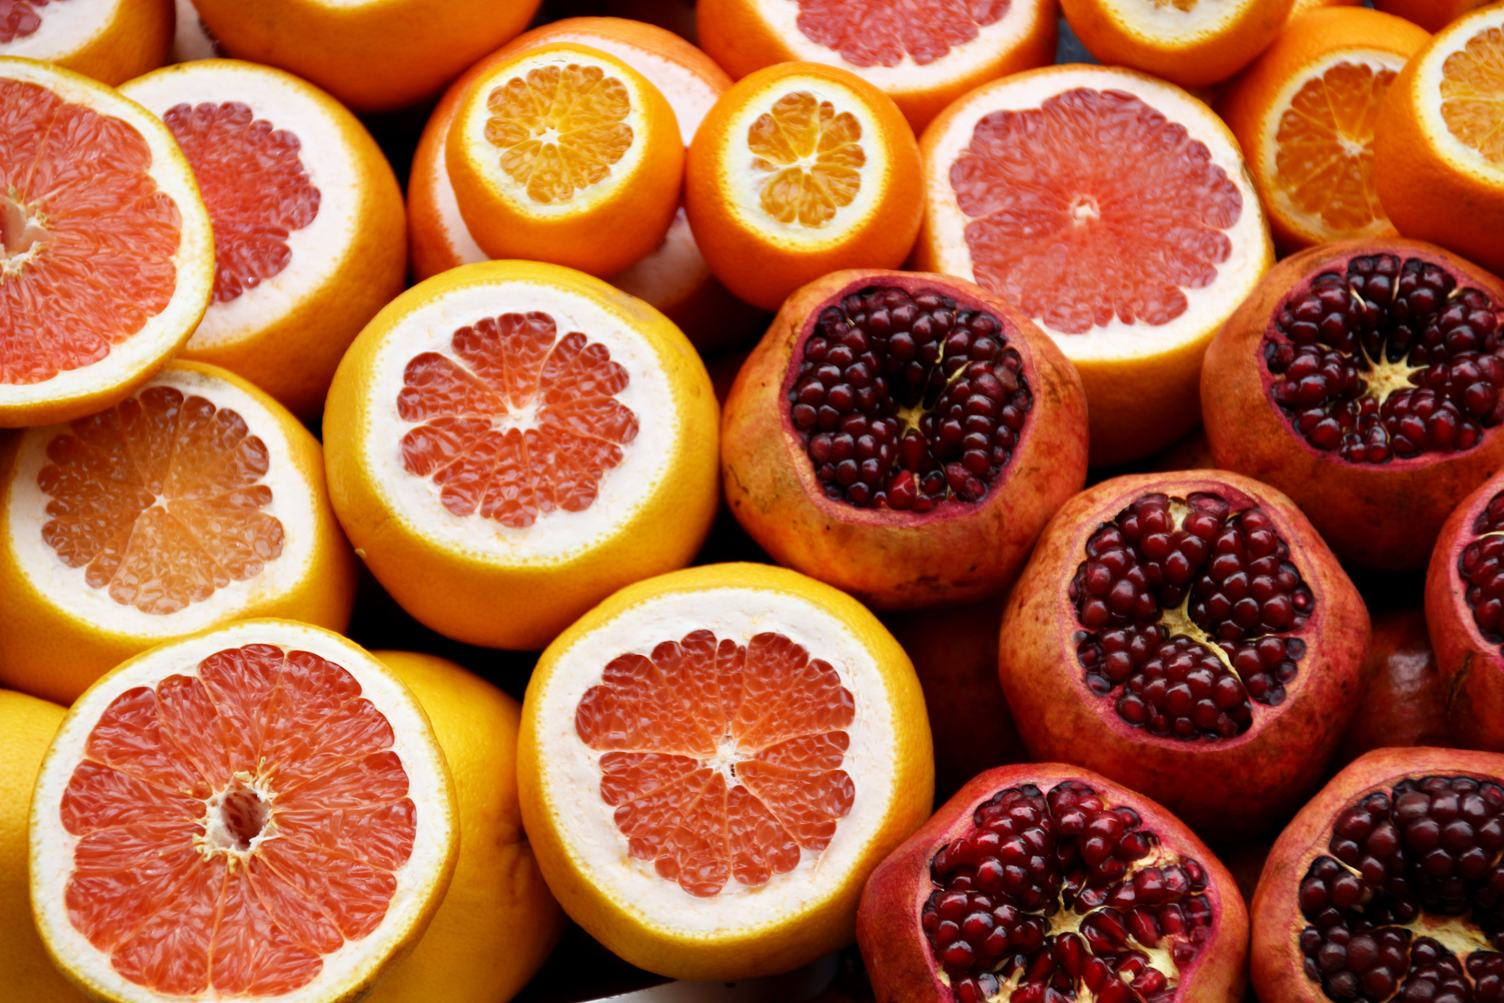 Citrus Fruits Half Cut Orange, Grapefruit, Pomegranate